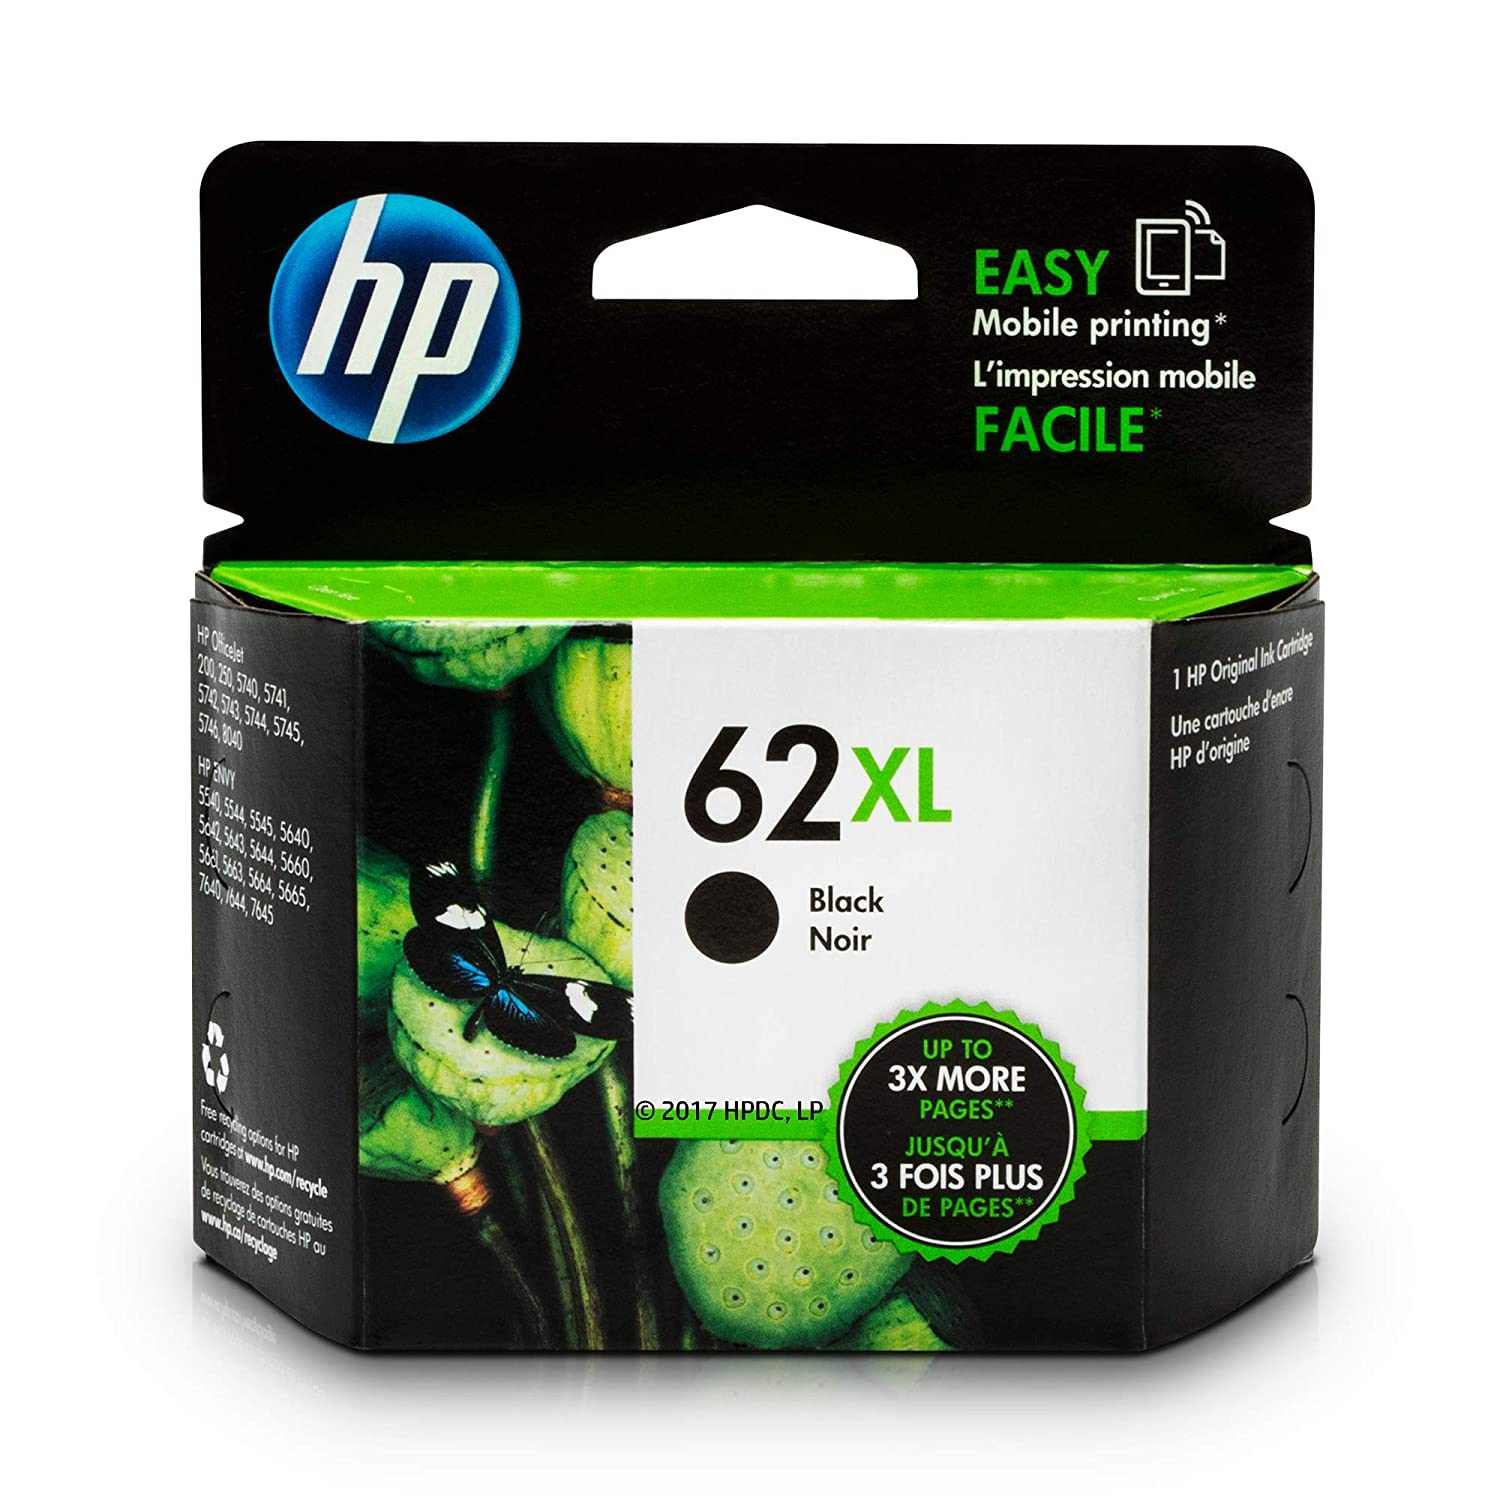 HP 62XL Black Ink Cartridge (C2P05AN) for HP ENVY 5540 5541 5542 5543 5544 5545 5547 5548 5549 5640 5642 5643 5644 5660 5661 5663 5664 5665 7640 7643 7644 7645 HP Officejet 200 250 258 5740 5741